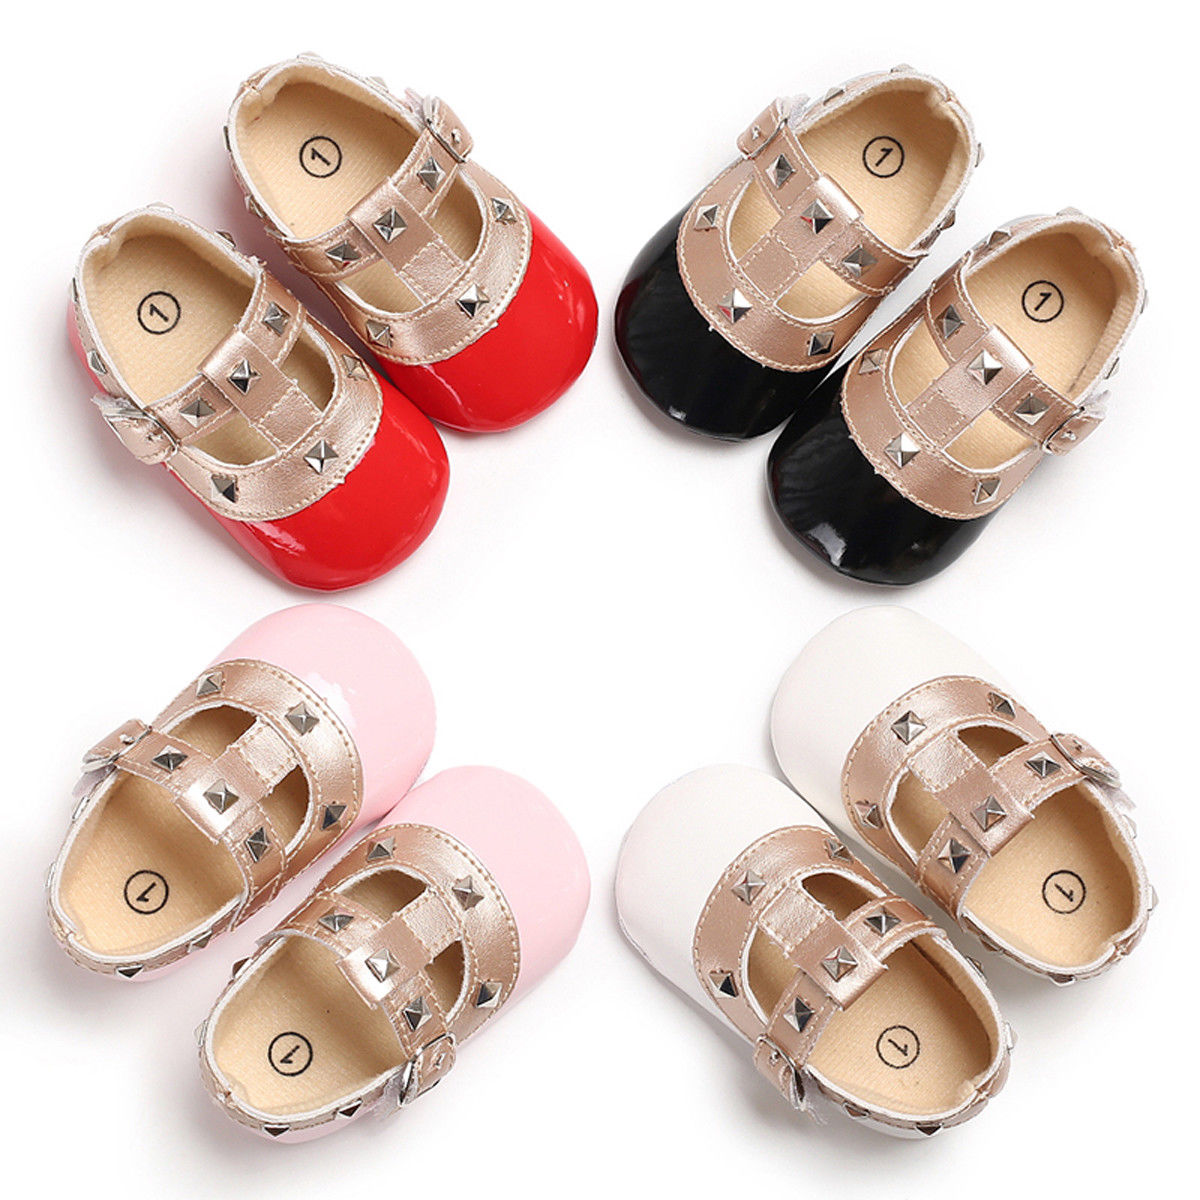 2019 Hot Boutique Newborn Baby Girls Shoes Bow Princess PU Leather Shoes Anti-slip Soft Sole Crib Sneaker Prewalker